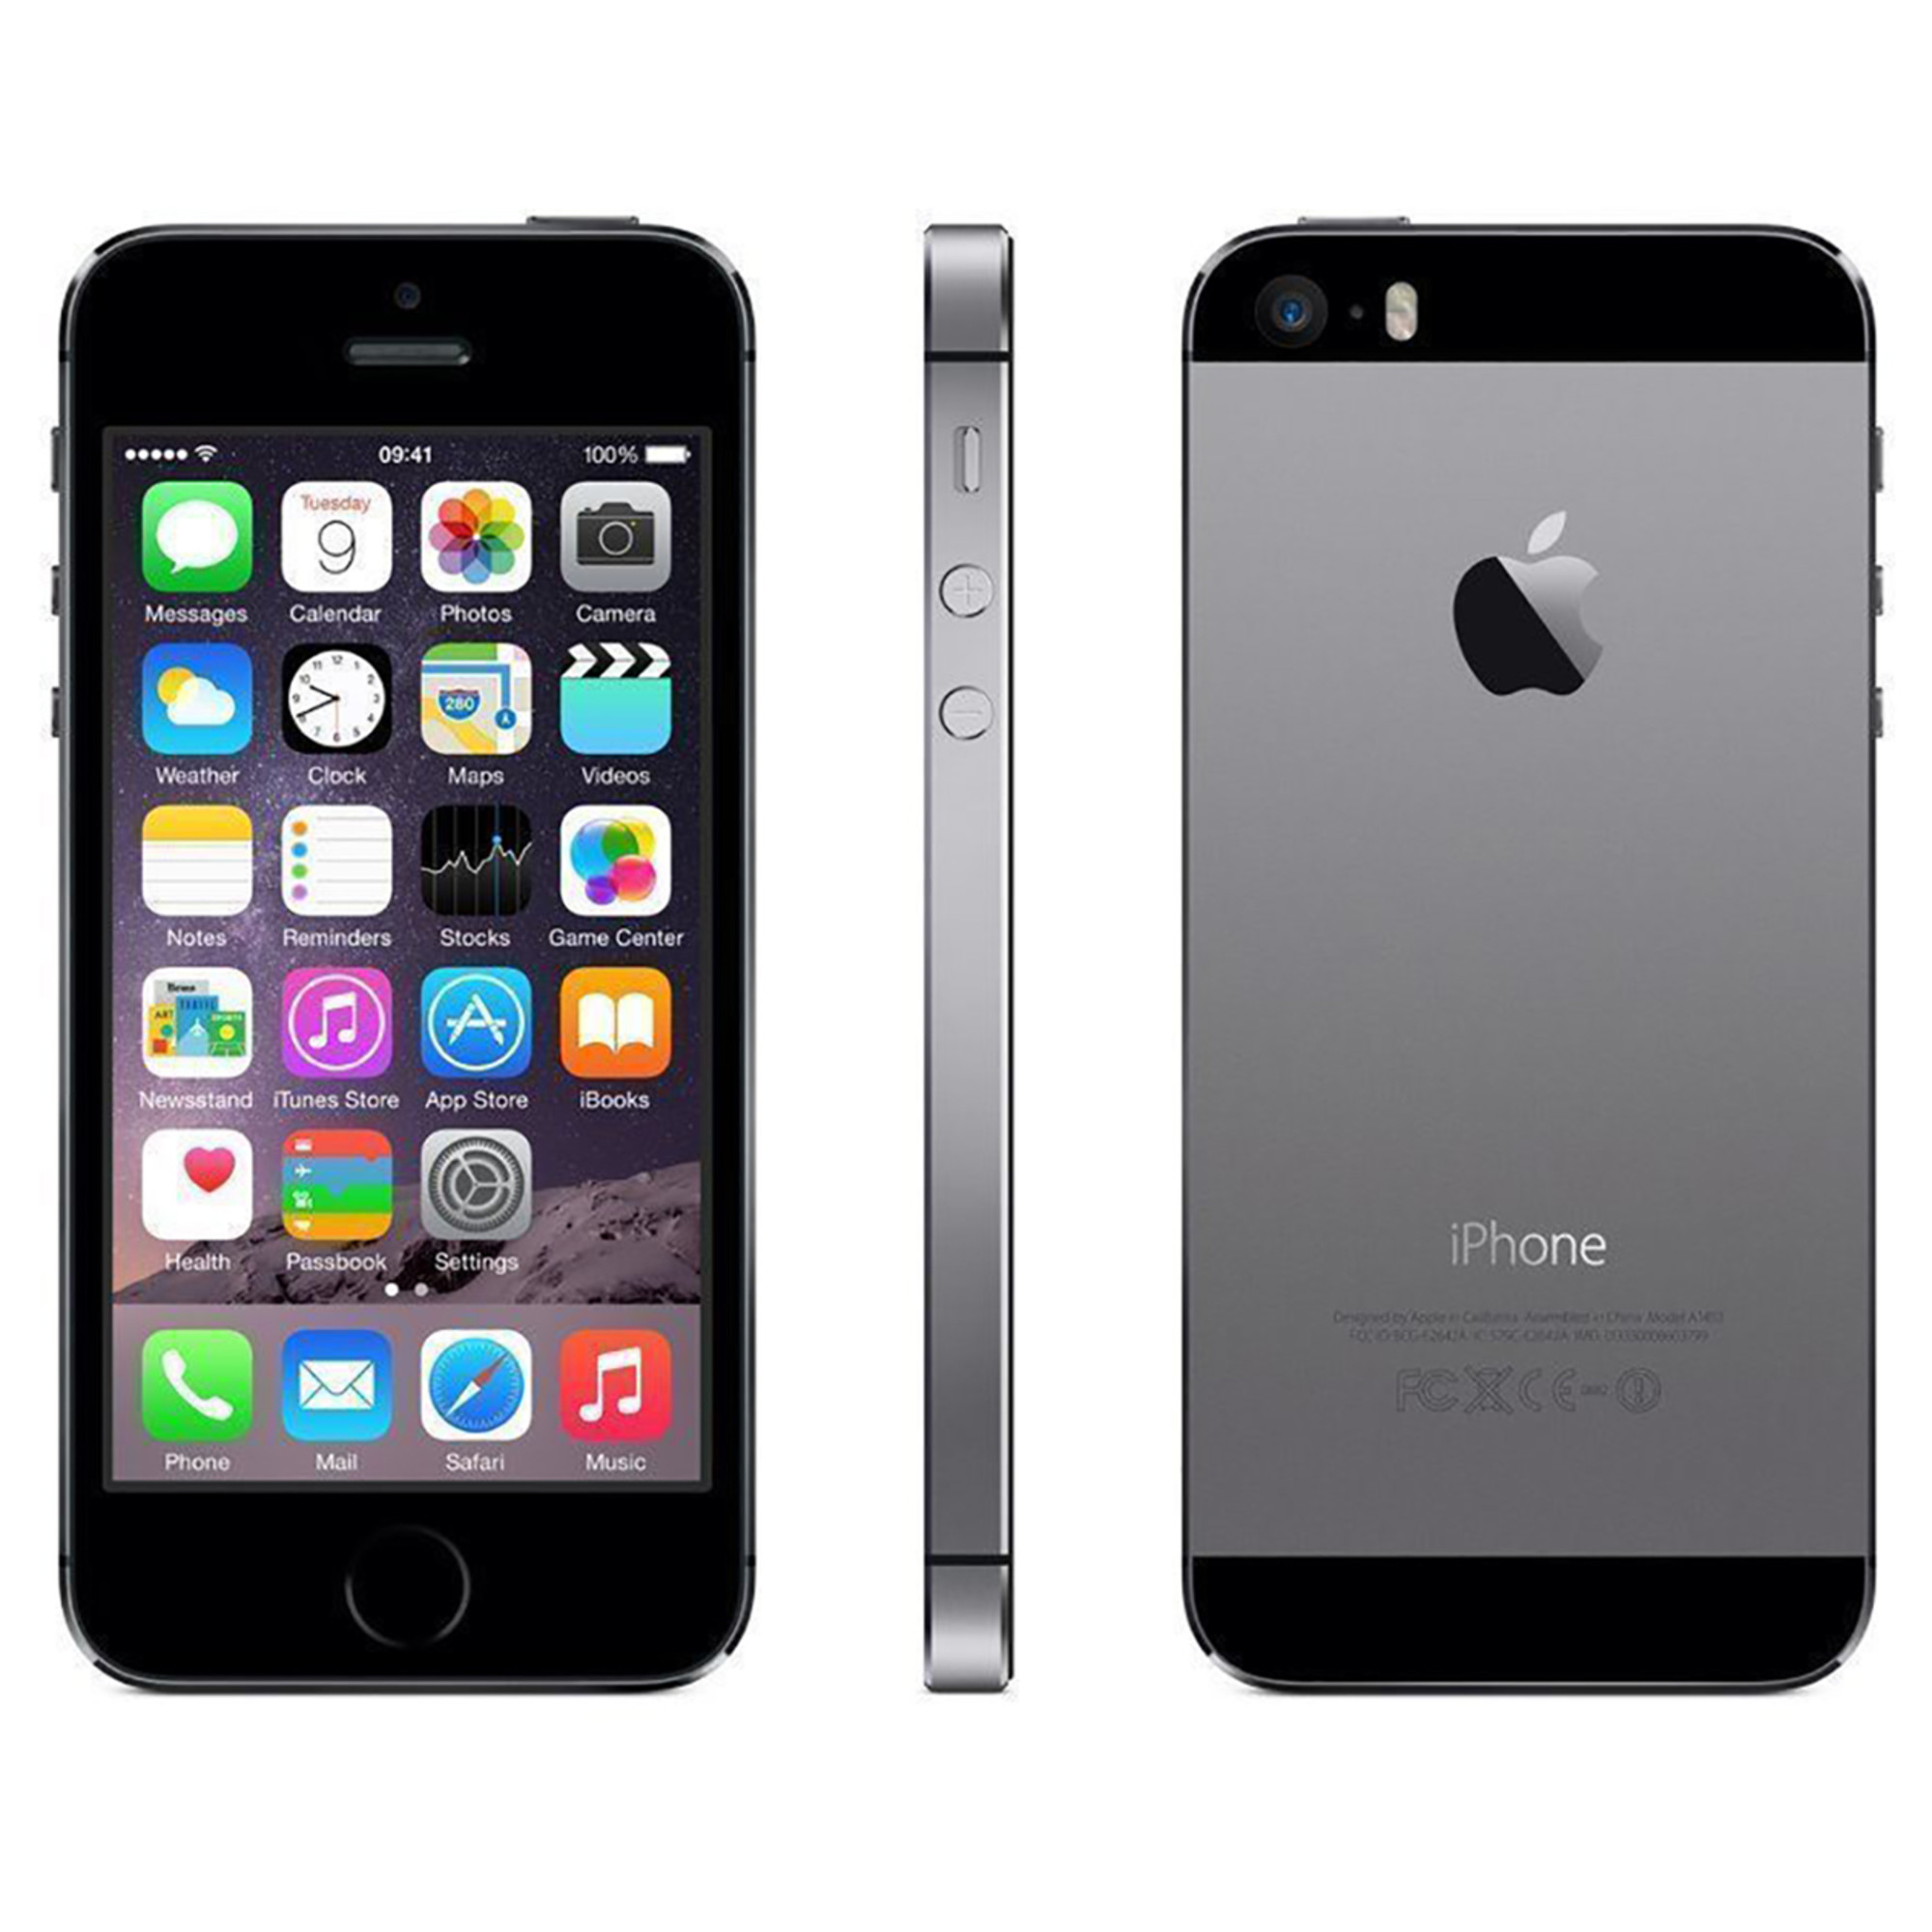 ebay refurbished iphone apple iphone 5s 16gb unlocked gsm lte dualcore 8mp phone 10535